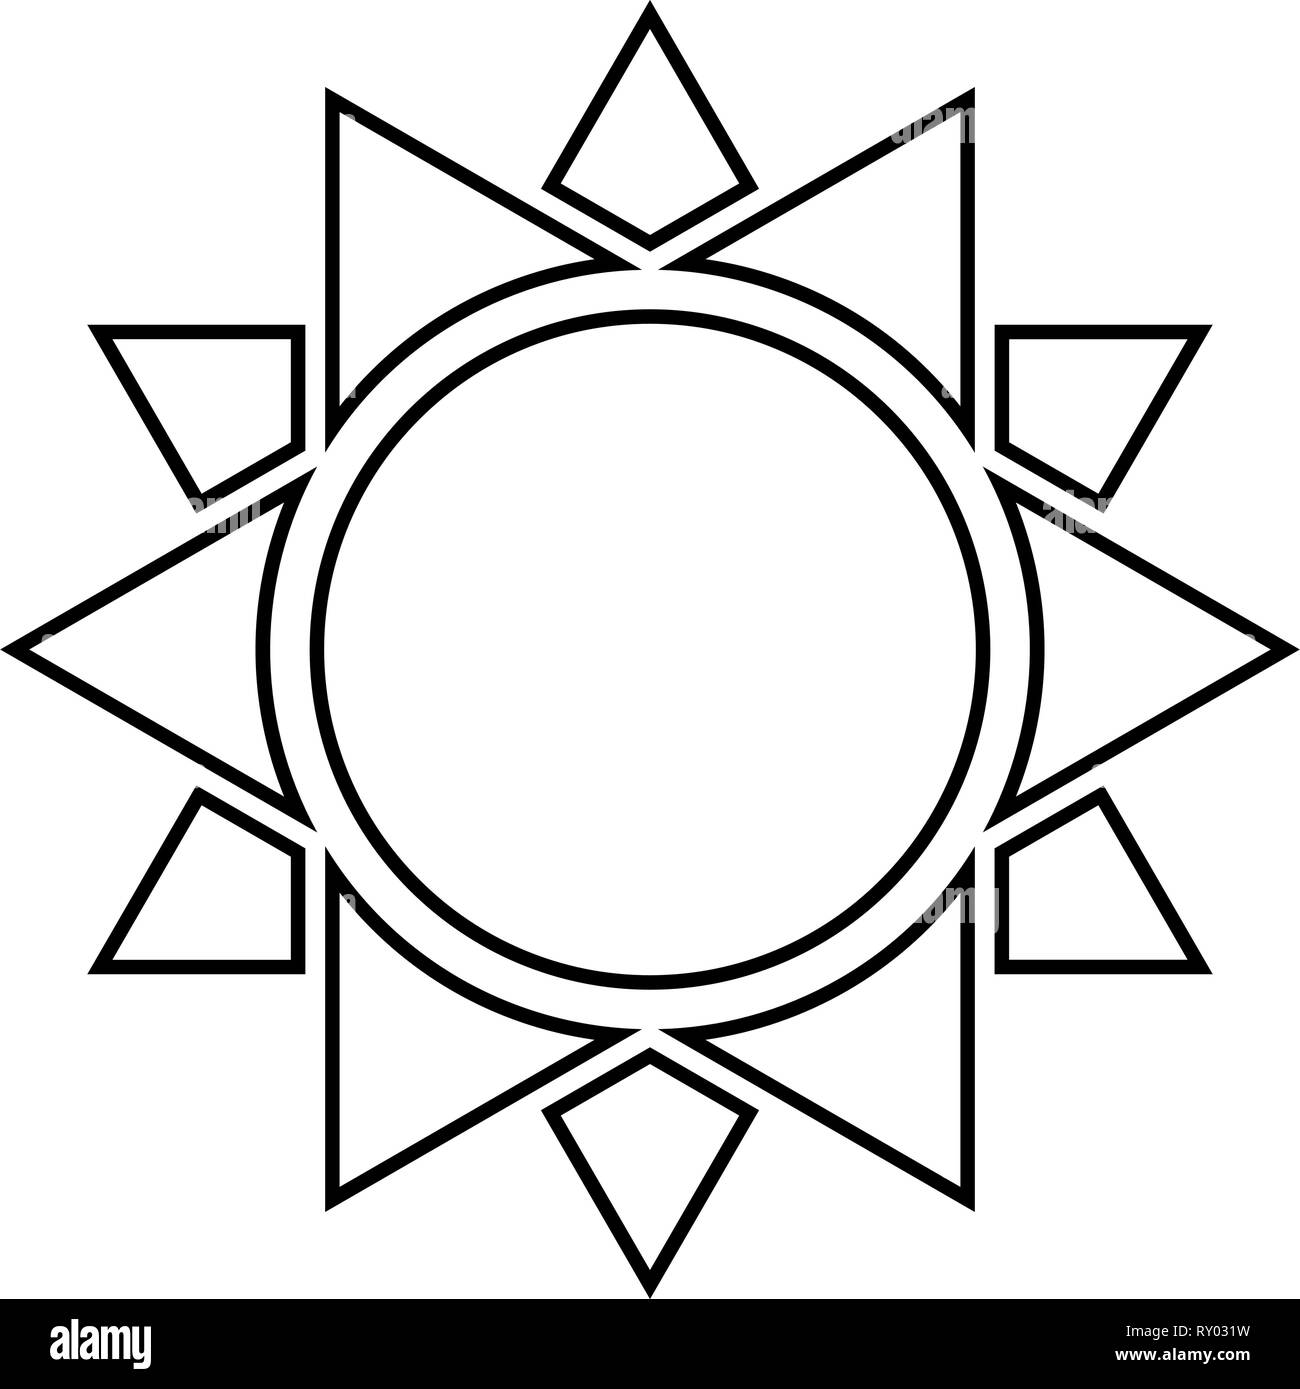 Sun icon black color outline vector illustration flat style image - Stock Vector